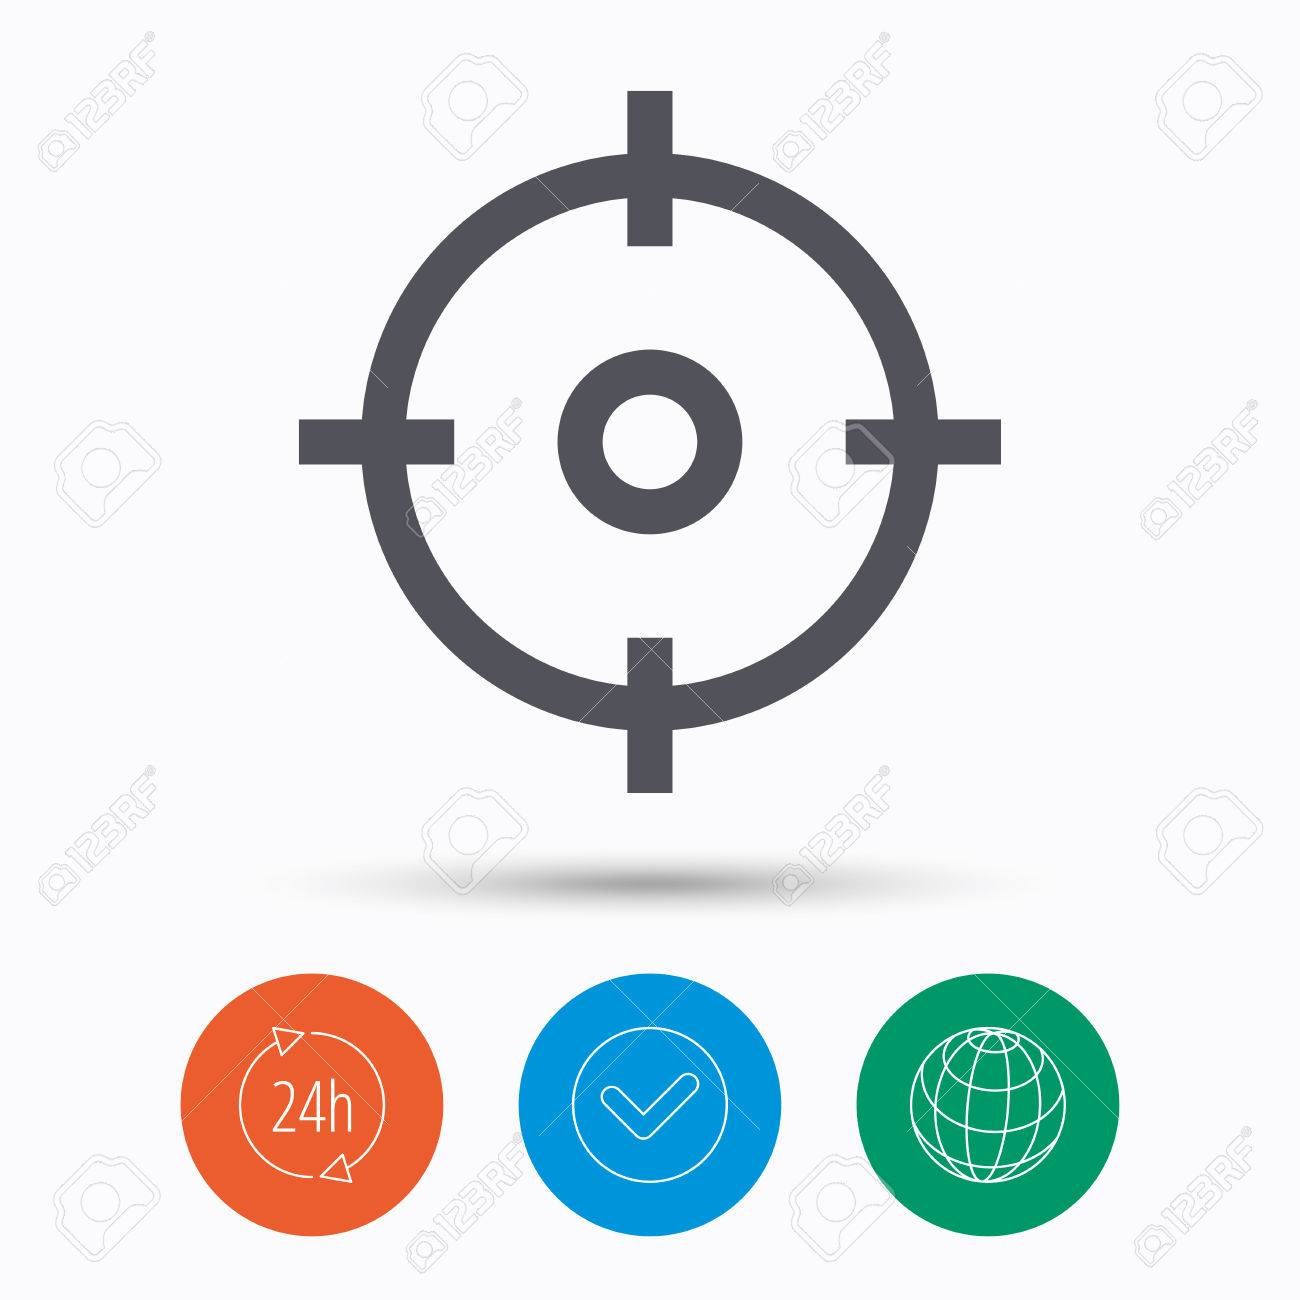 24 Internet Target Icon Crosshair Aim Symbol Check Tick 24 Hours Service And Internet Globe Linear Icons On White Background Vector